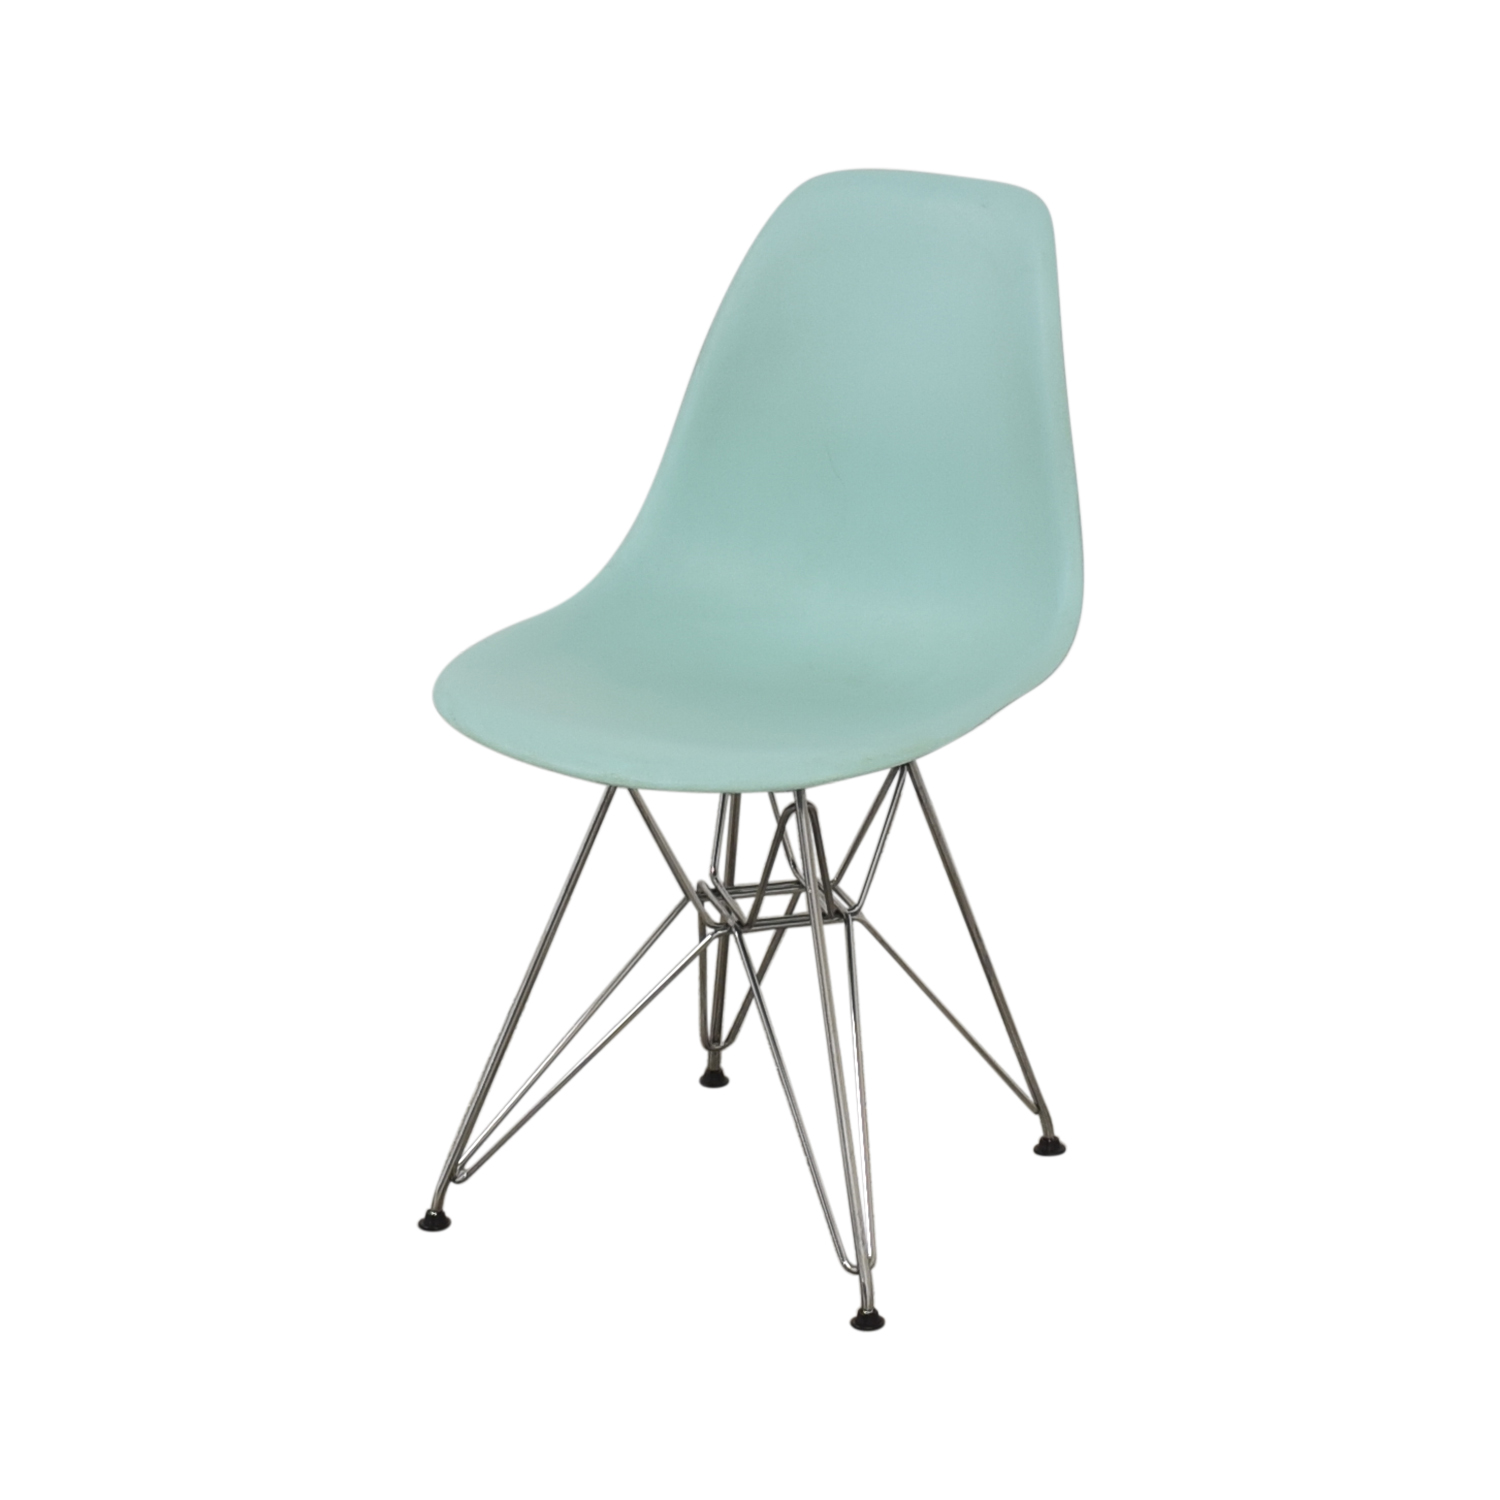 Herman Miller Herman Miller Eames Molded Plastic Side Chair with Wire Base nj